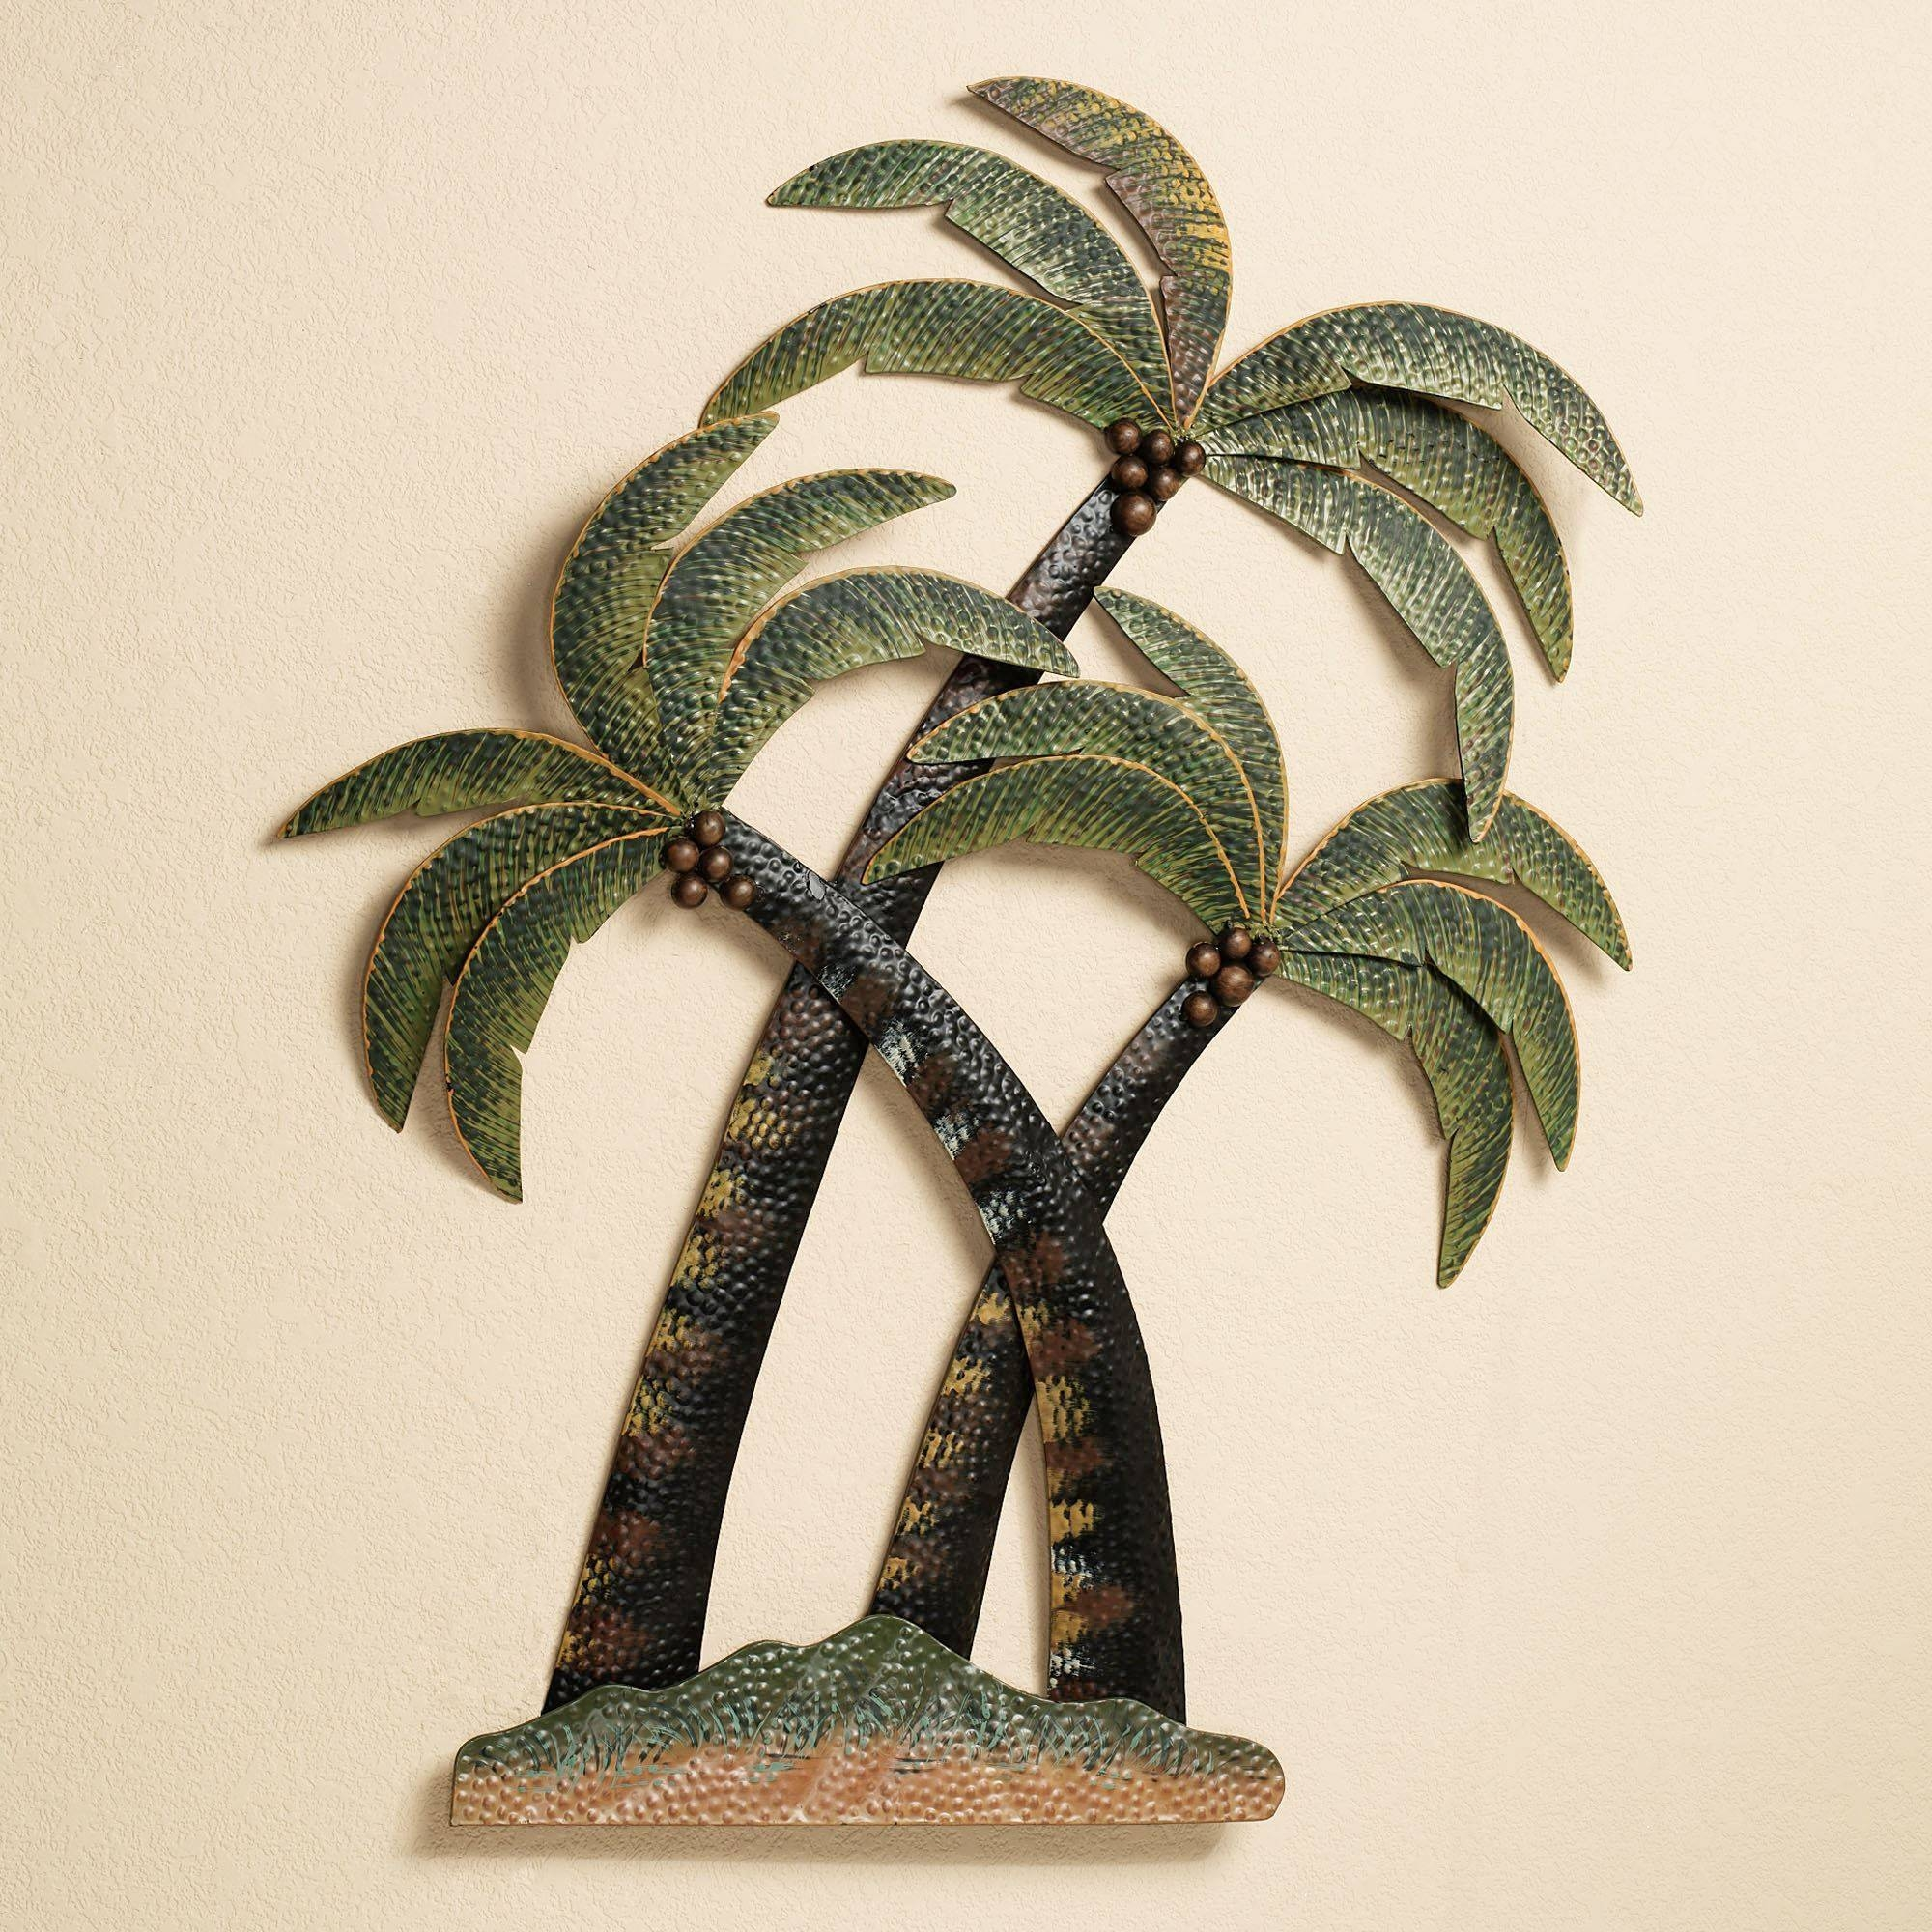 Coco Palm Tree Metal Wall Sculpture With Most Current Metal Wall Art Palm Trees (View 2 of 20)